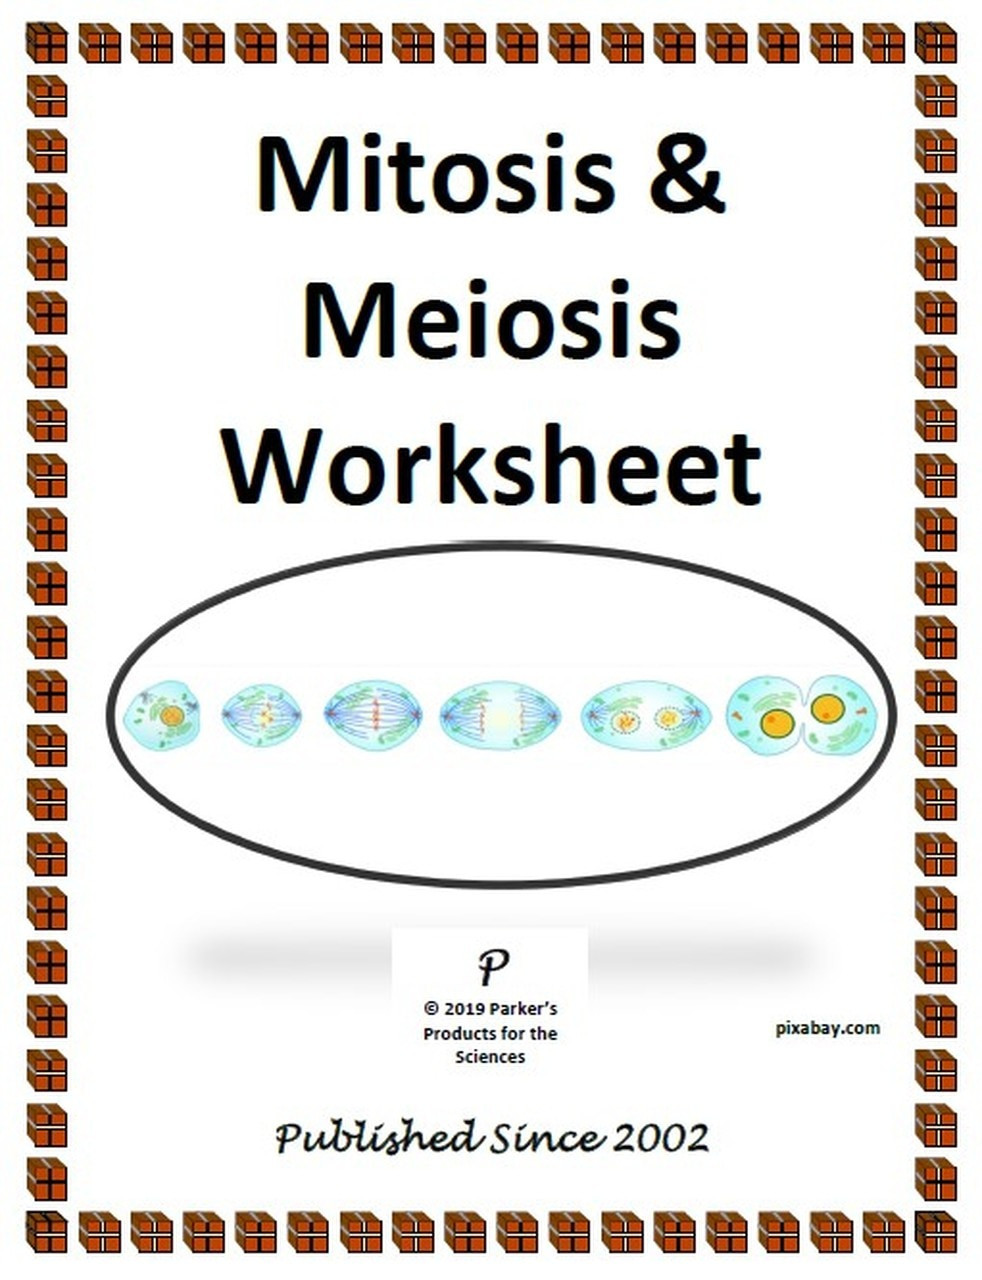 Meiosis Worksheet Middle School Mitosis & Meiosis Worksheet